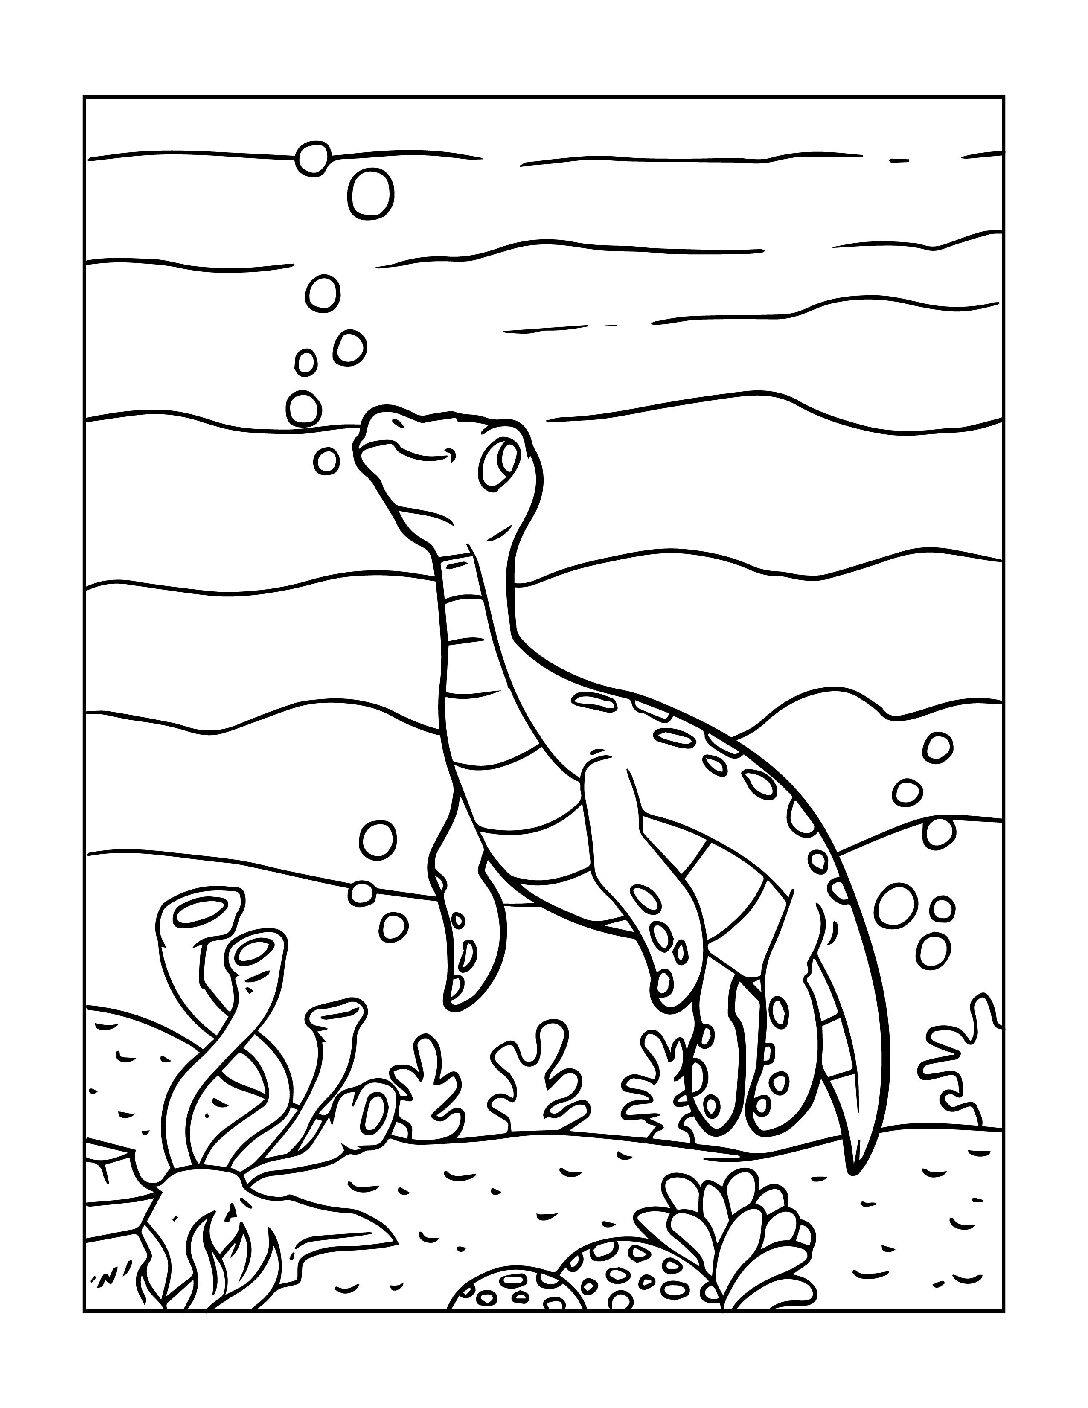 Coloring-Pages-Dinosaur-8-pdf Free Printable Dinasour Colouring Pages